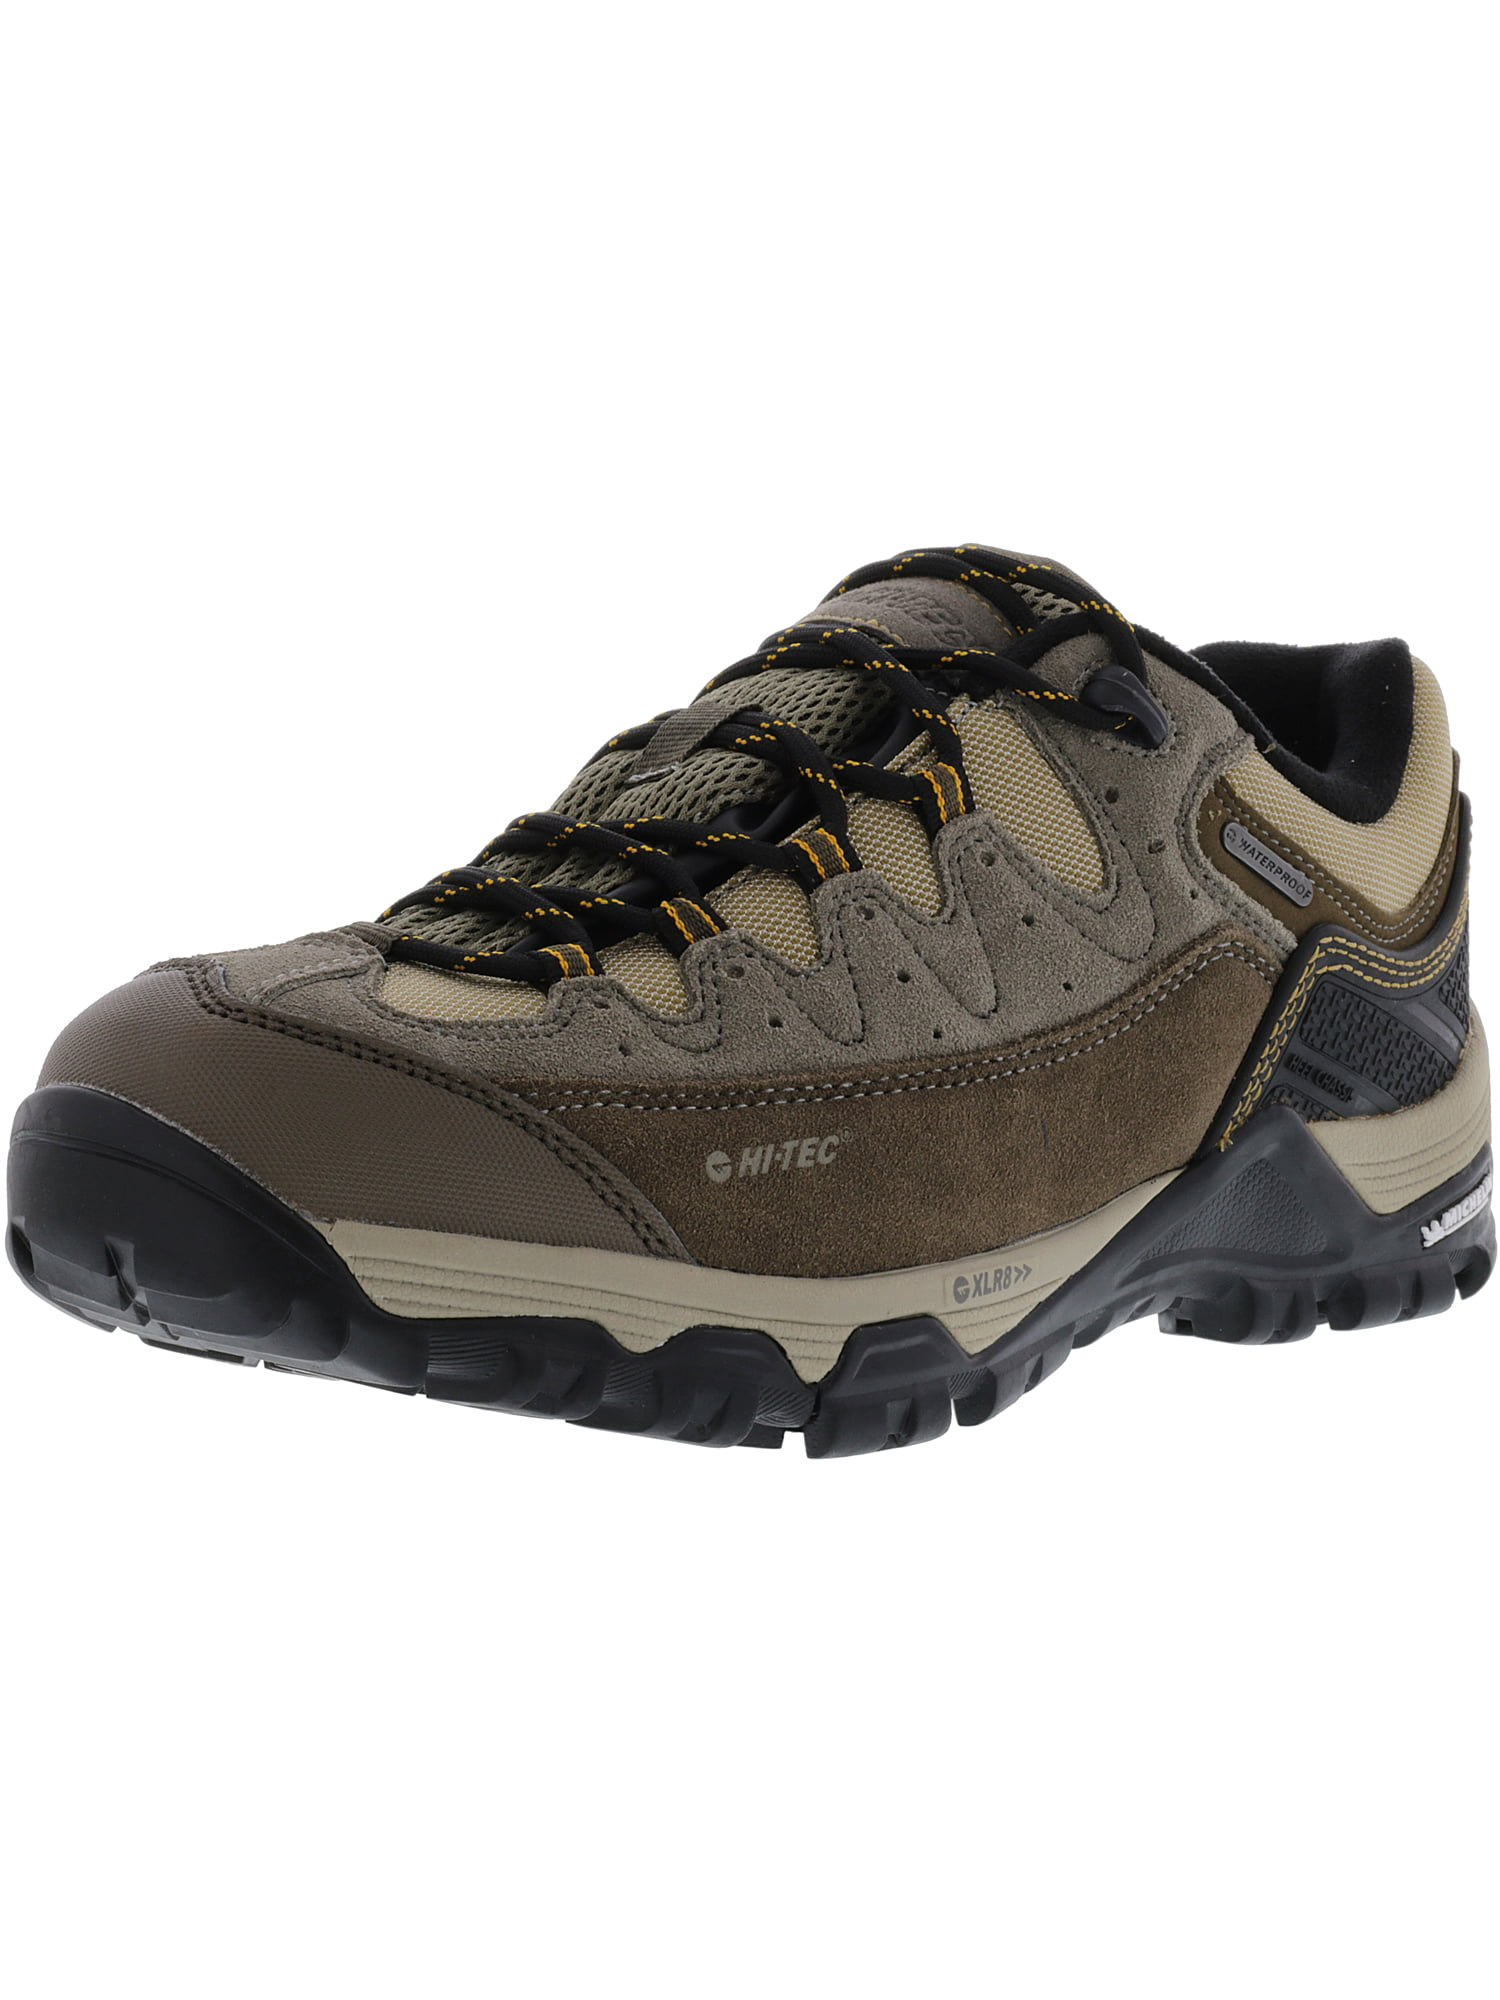 Hi-Tec Men's Ox Belmont Low I Waterproof Taupe   Brown Core Gold Ankle-High Suede Hiking Shoe 11.5M by Hi-Tec